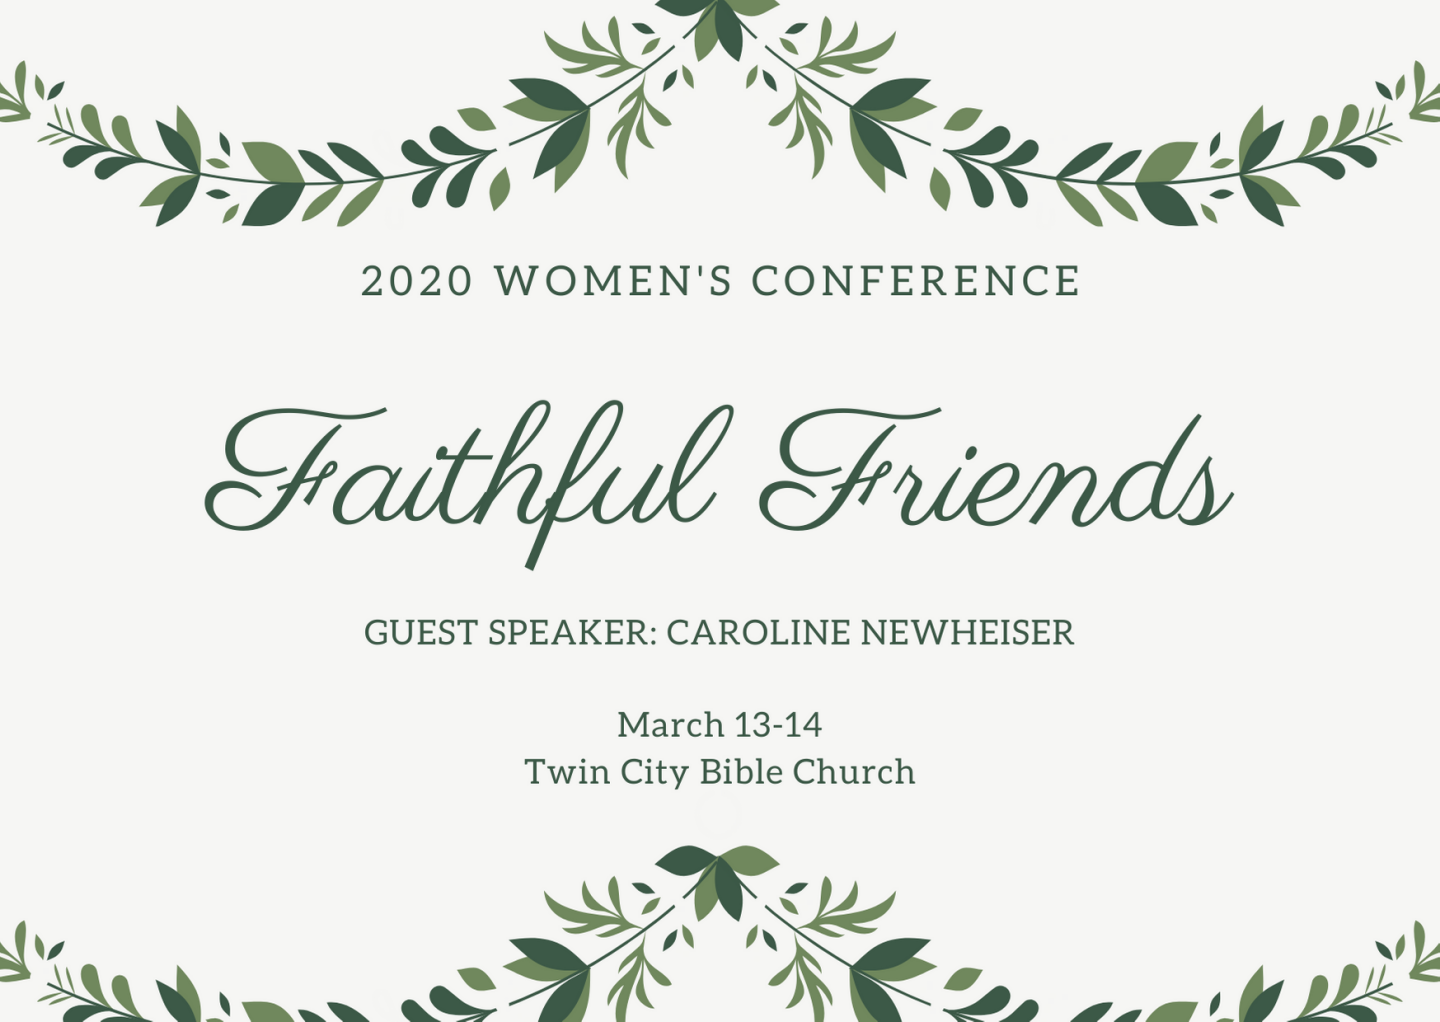 2020 Women's Conference